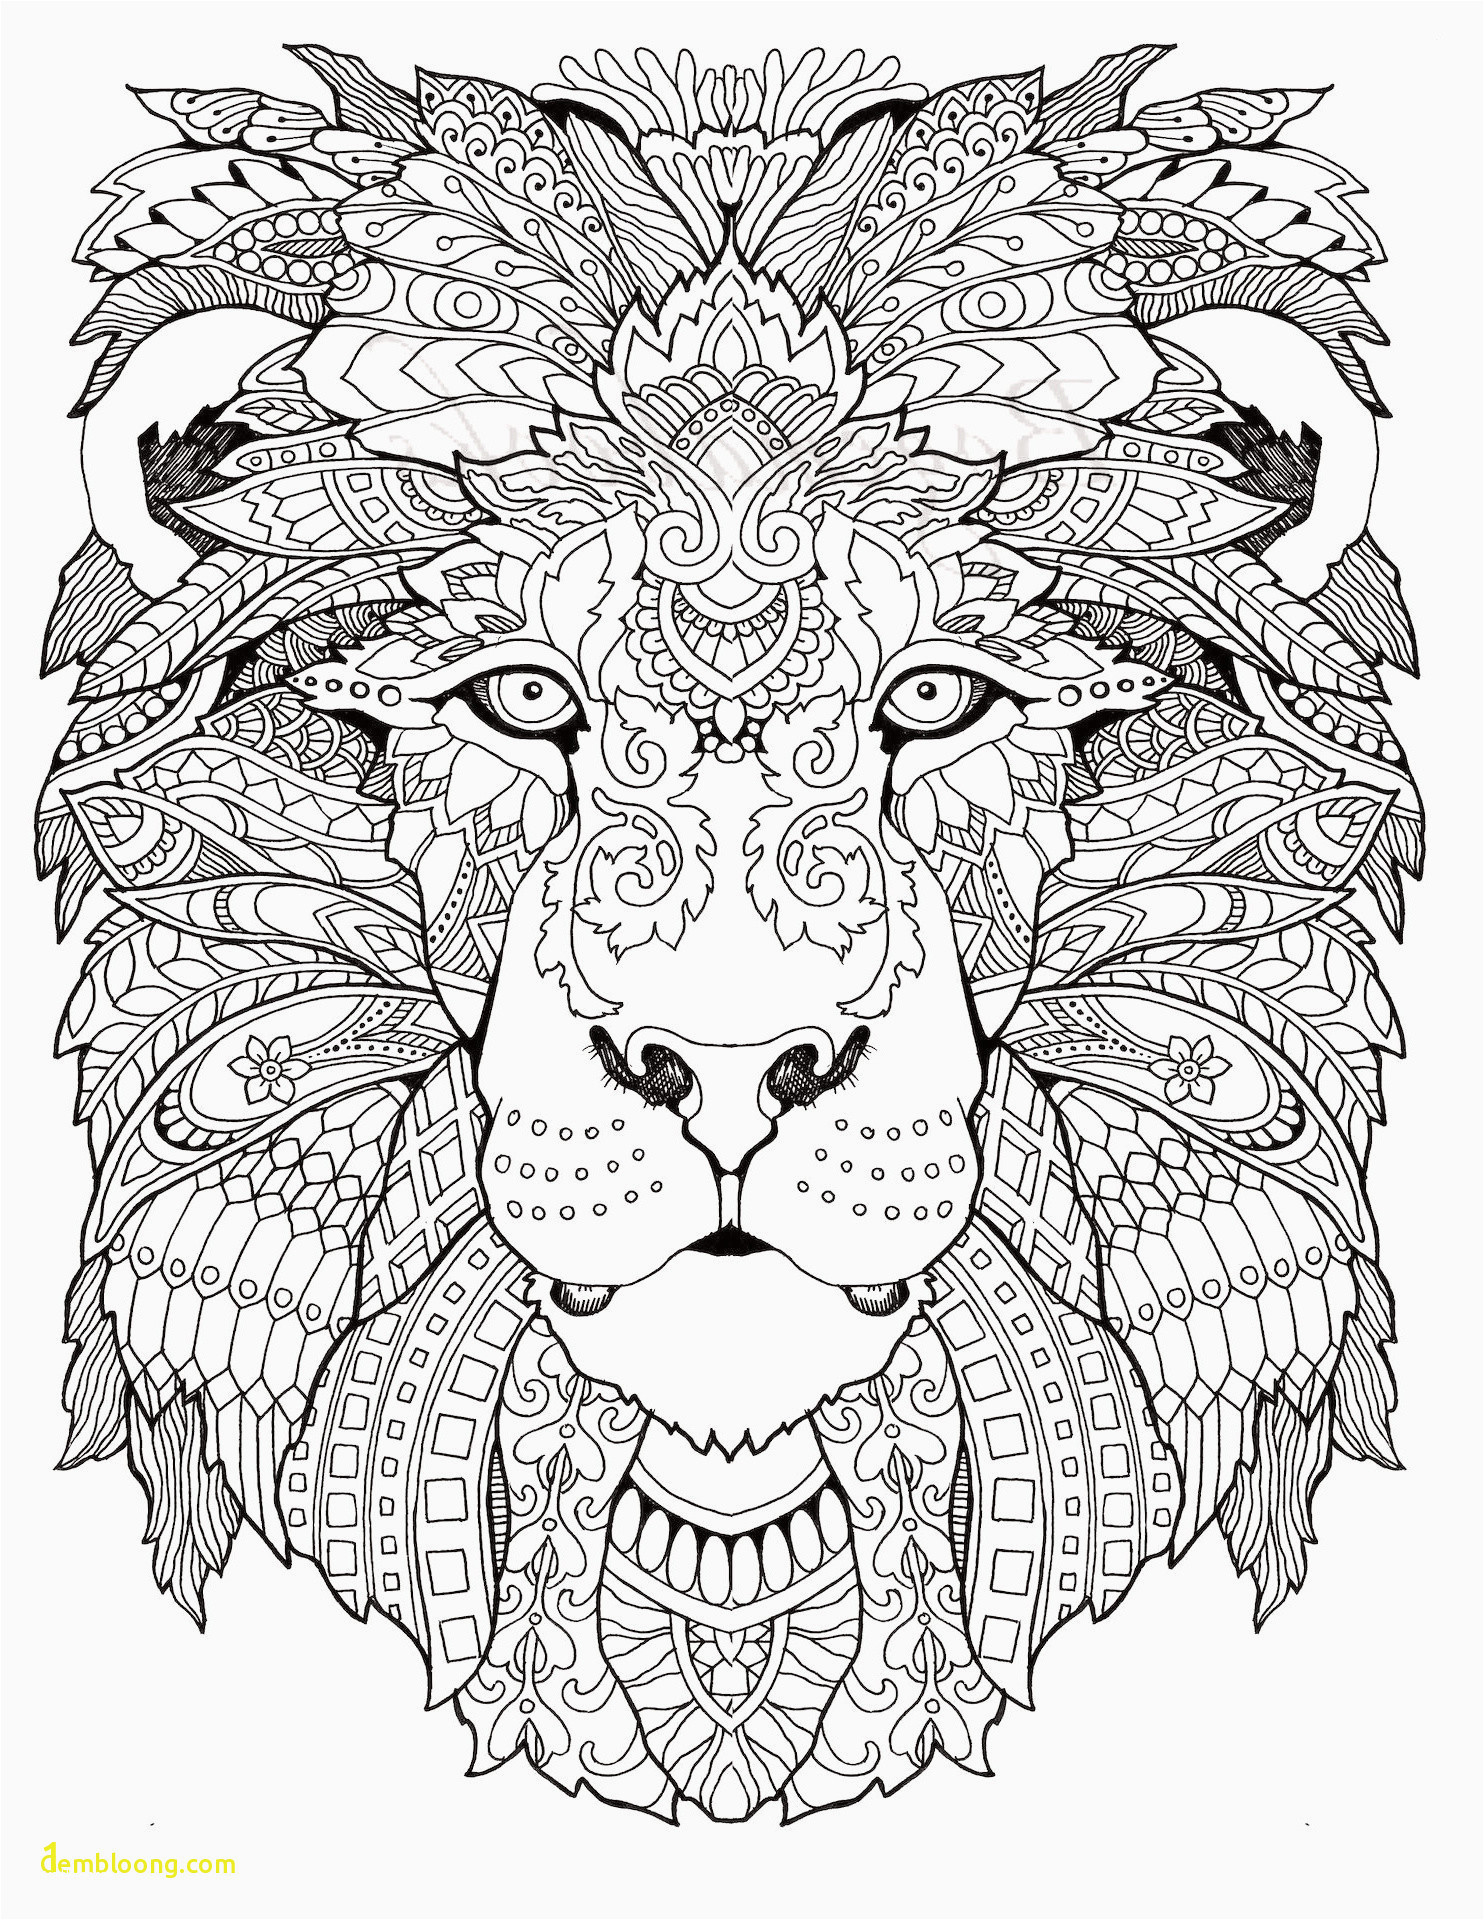 Color by Number Advanced Coloring Pages Coloring Pages Color by Number Sheets for Adults Coloring